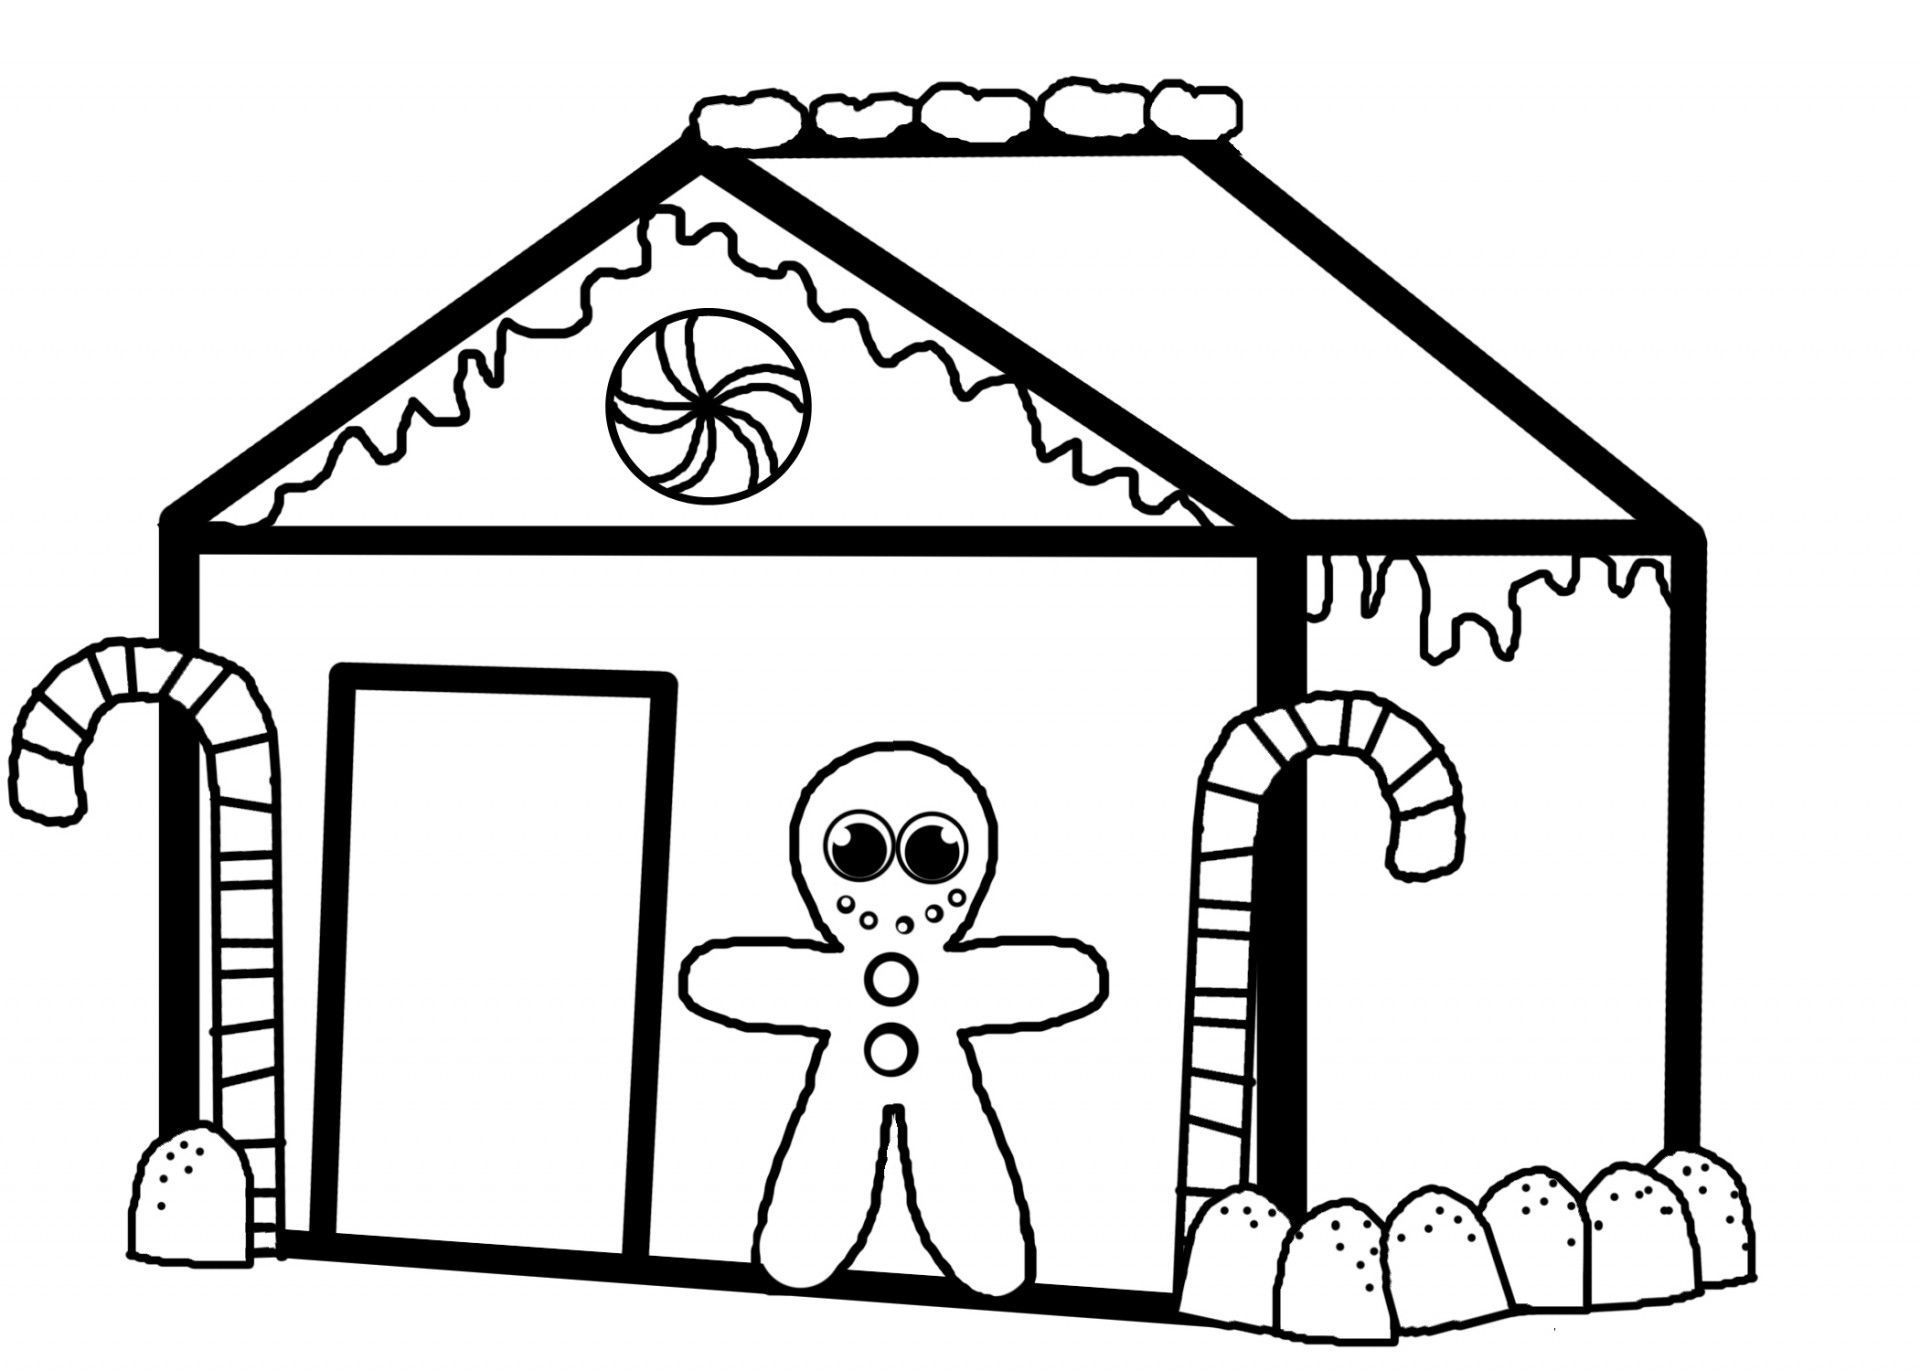 gingerbread house colouring pages breathtaking gingerbread house coloring page pdf house gingerbread colouring pages